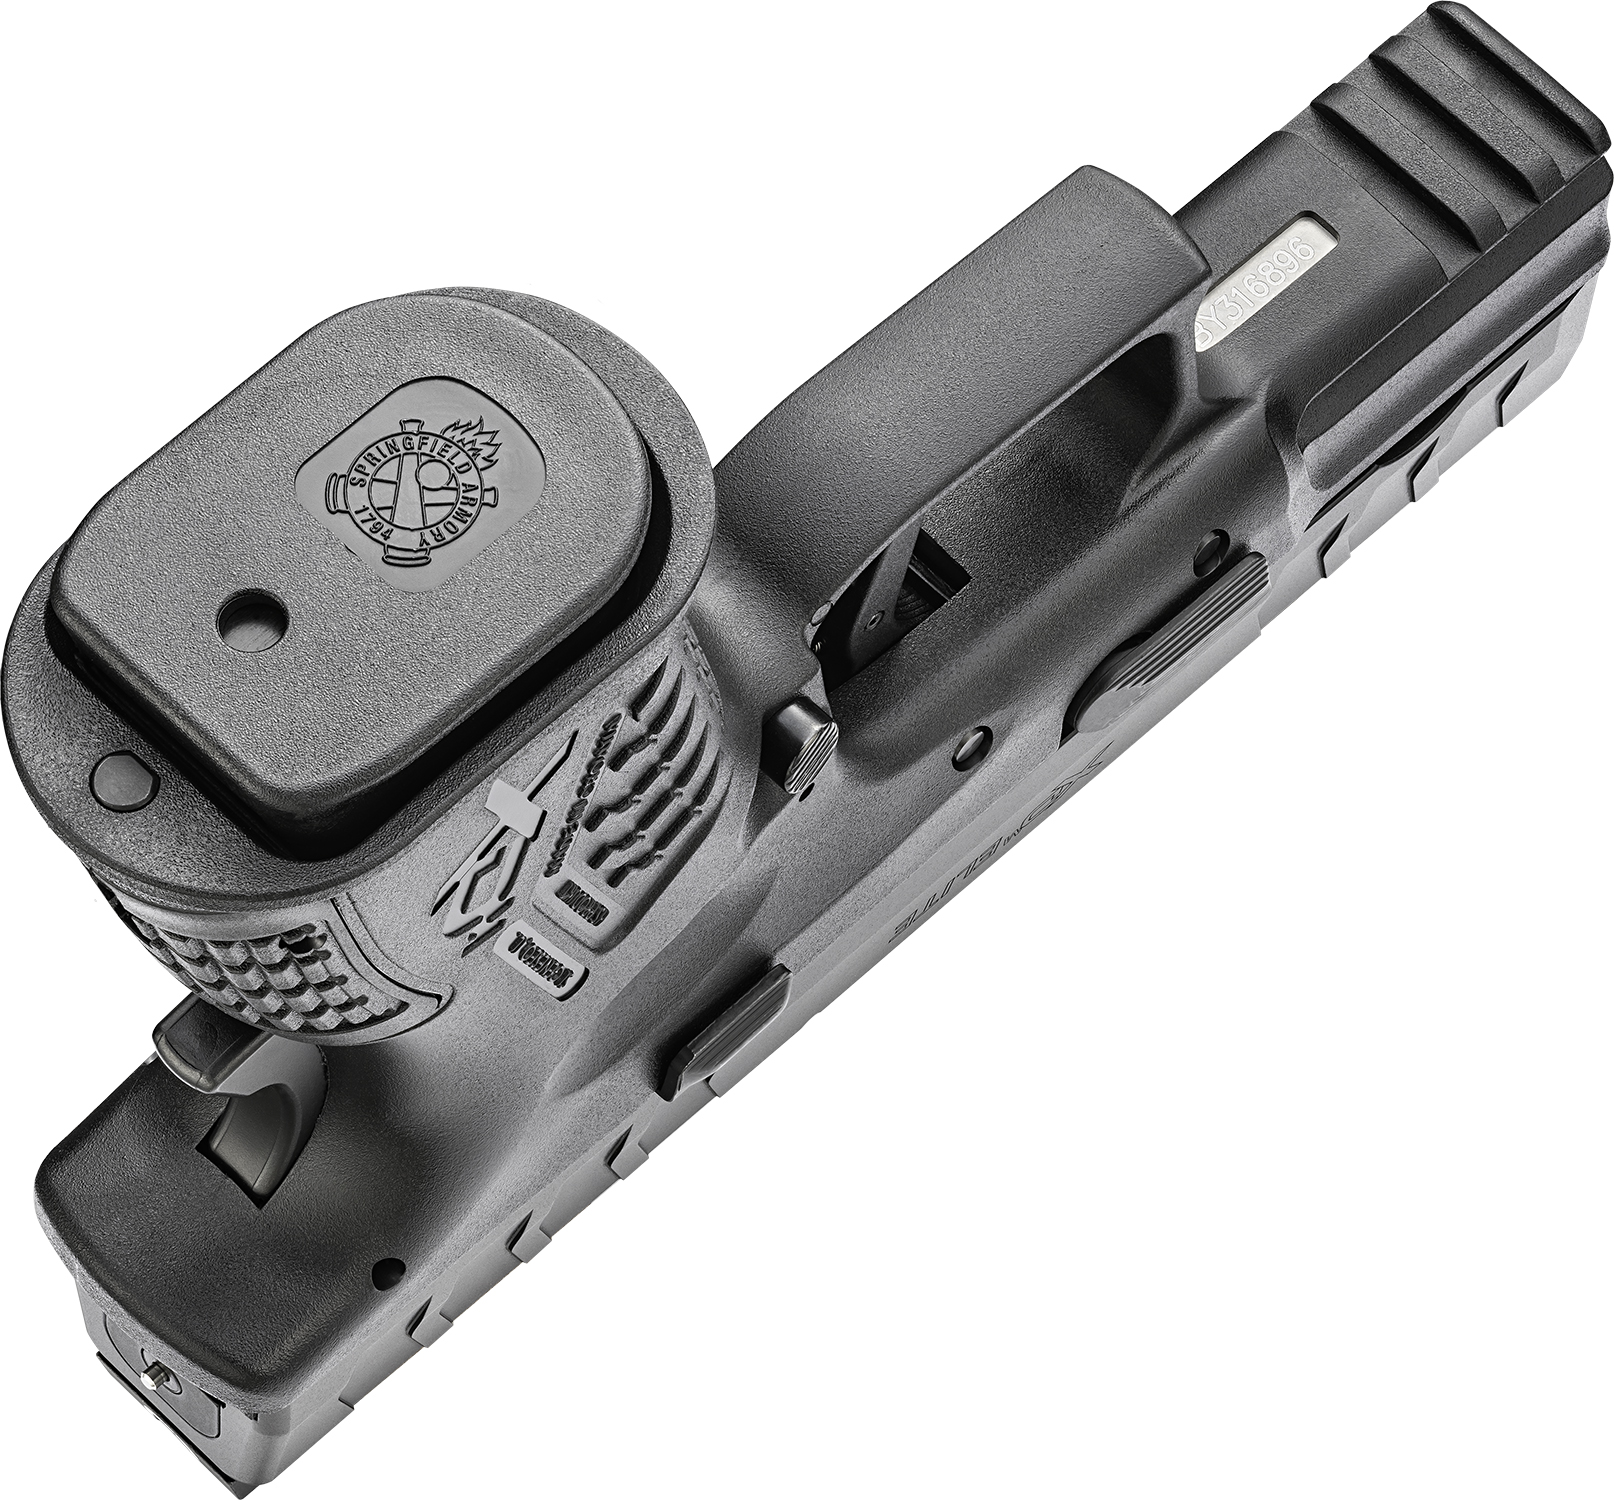 springfield armory xd-m elite 3.8 compact pistol 9mm concealed carry ccw gun